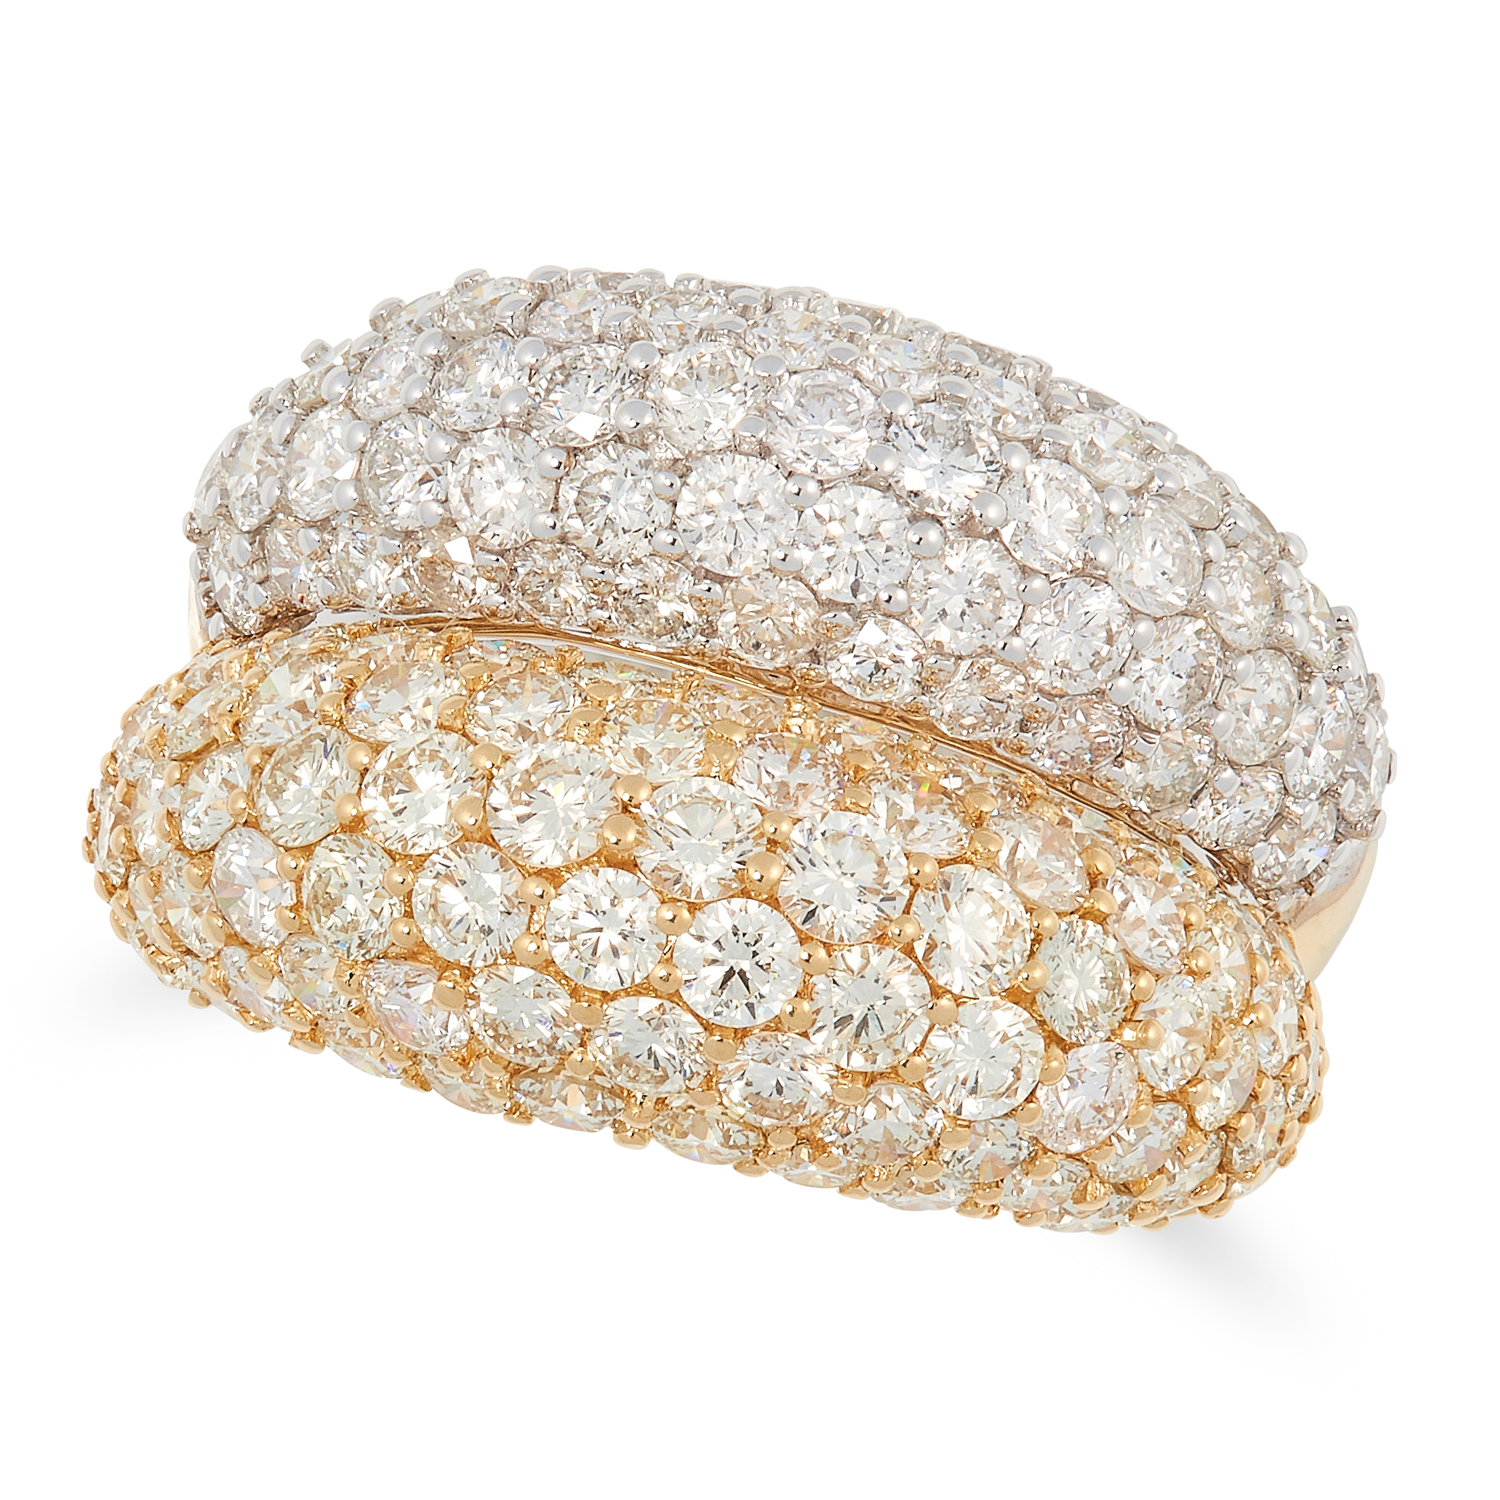 A DIAMOND TWO TONE BOMBE RING in 18ct gold, designed as a double bombe band, set with round cut